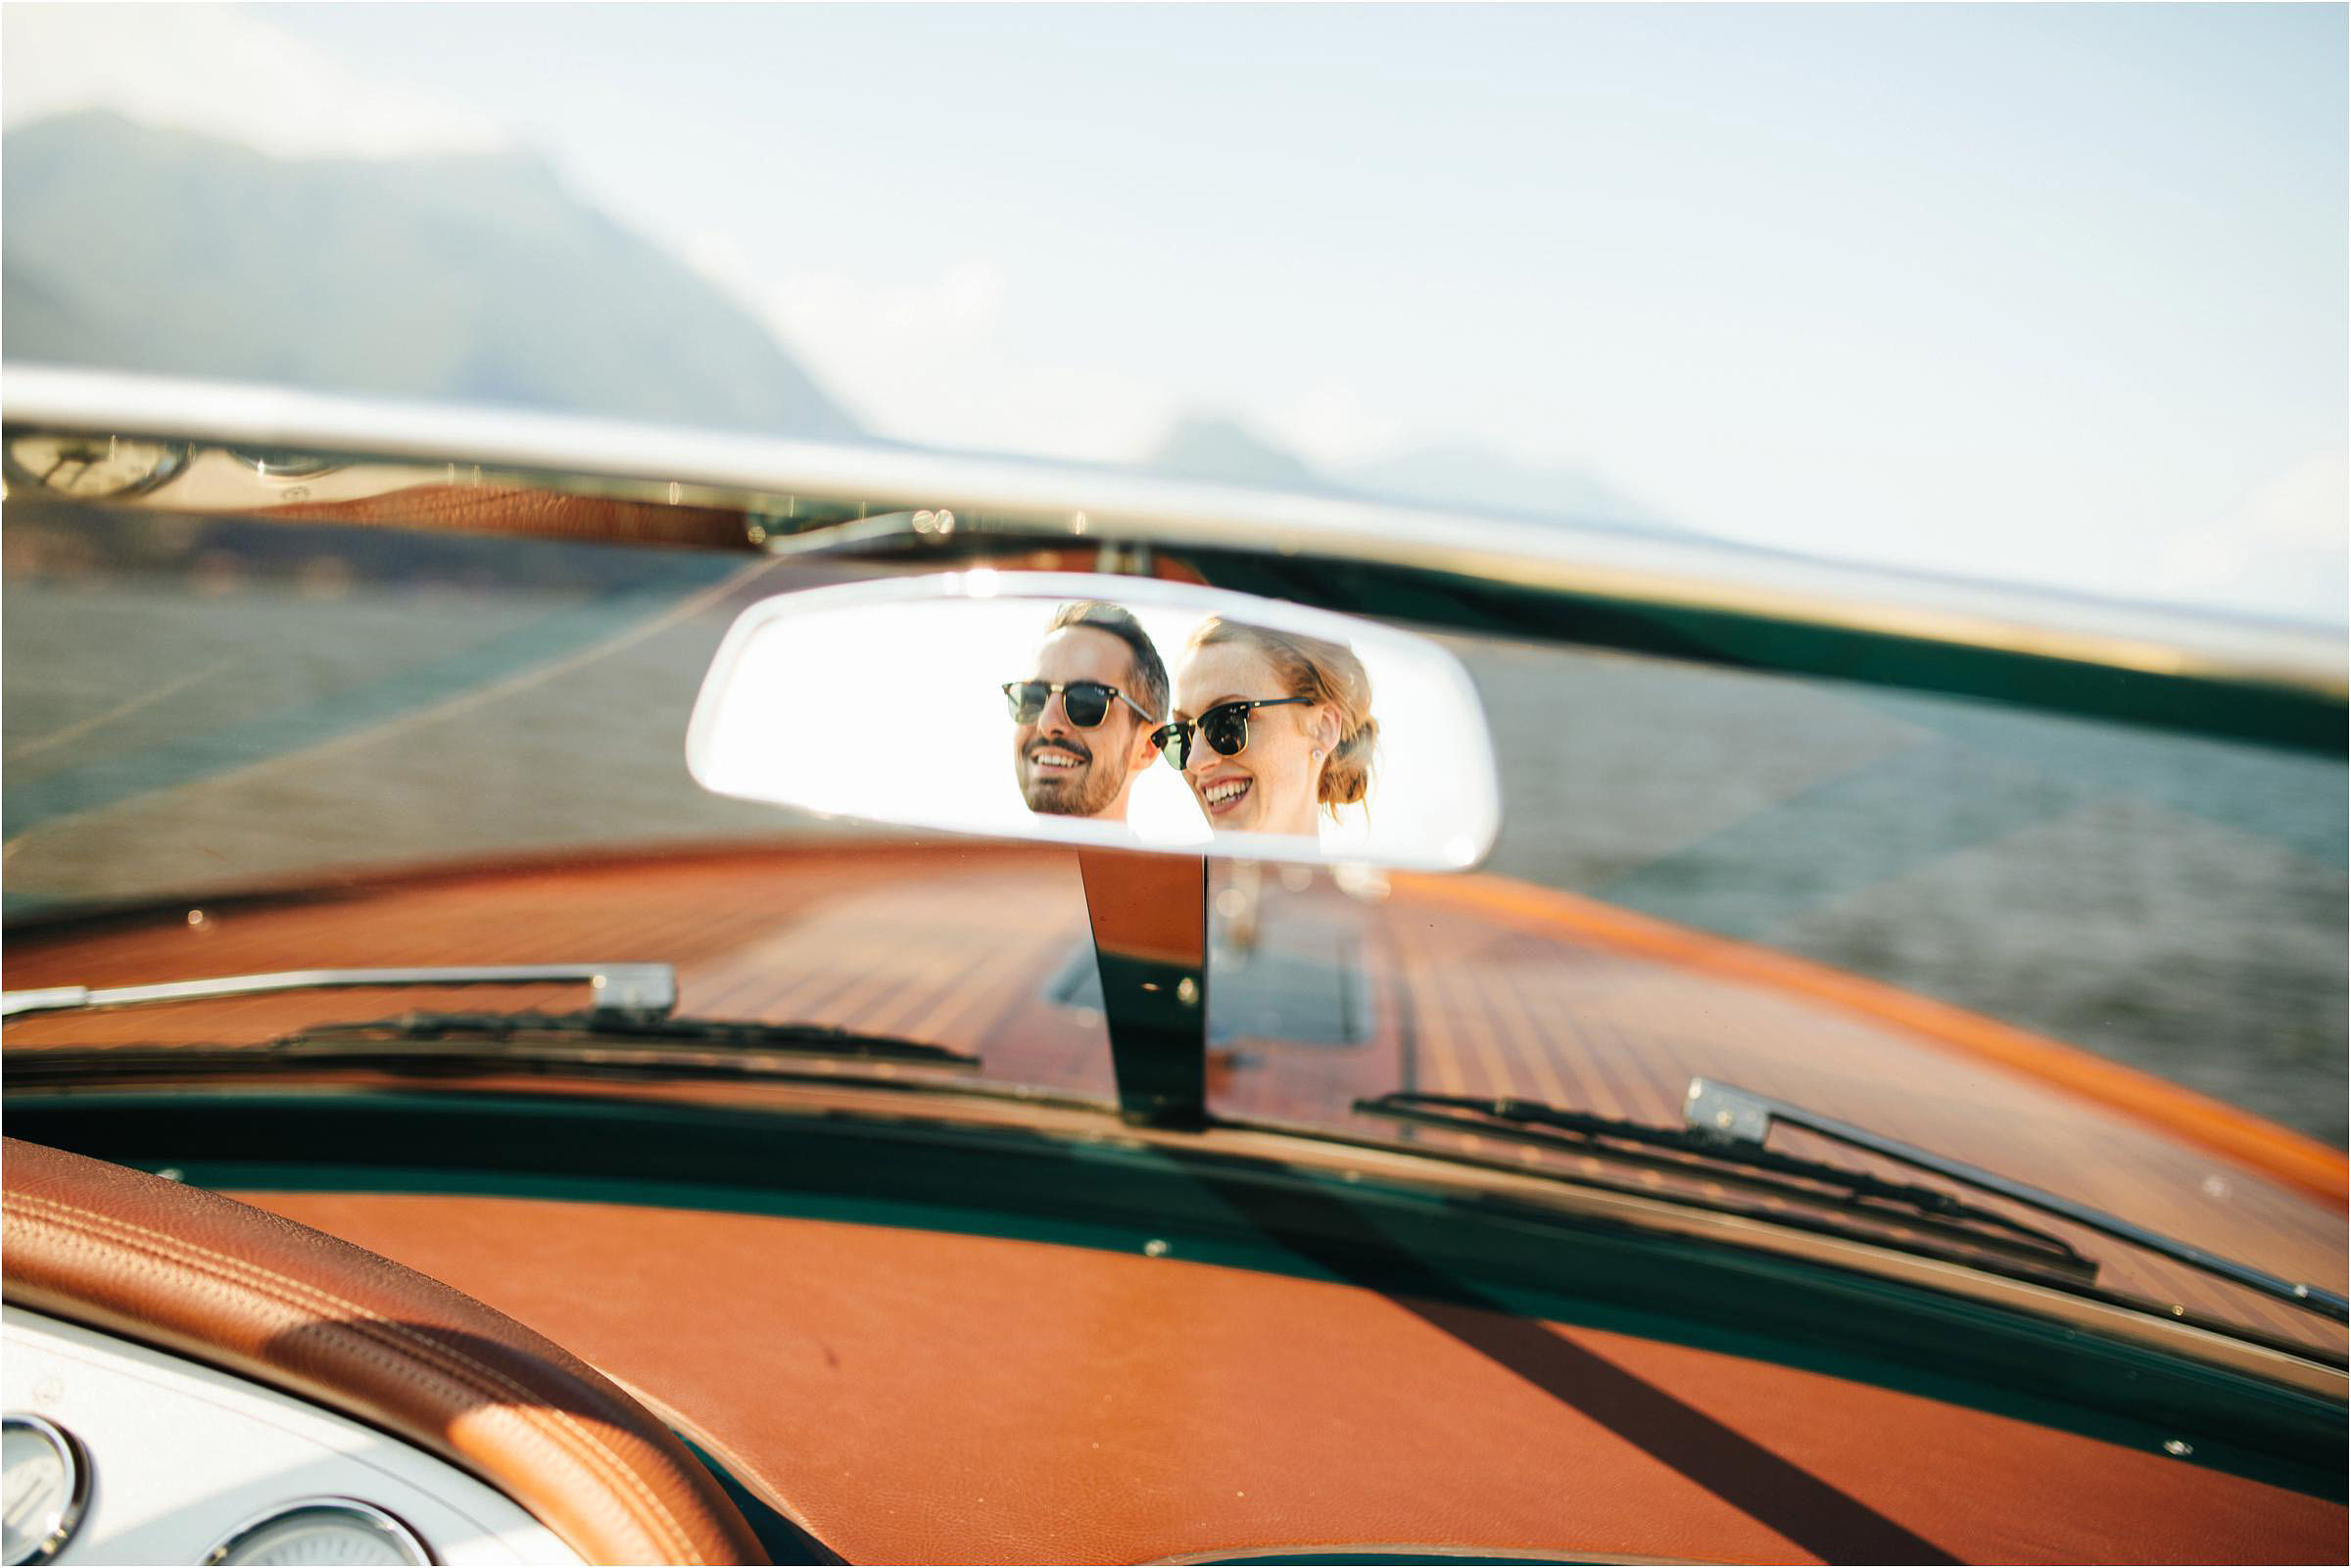 Creative composition of couple in rear view mirror - photo by The Crawleys